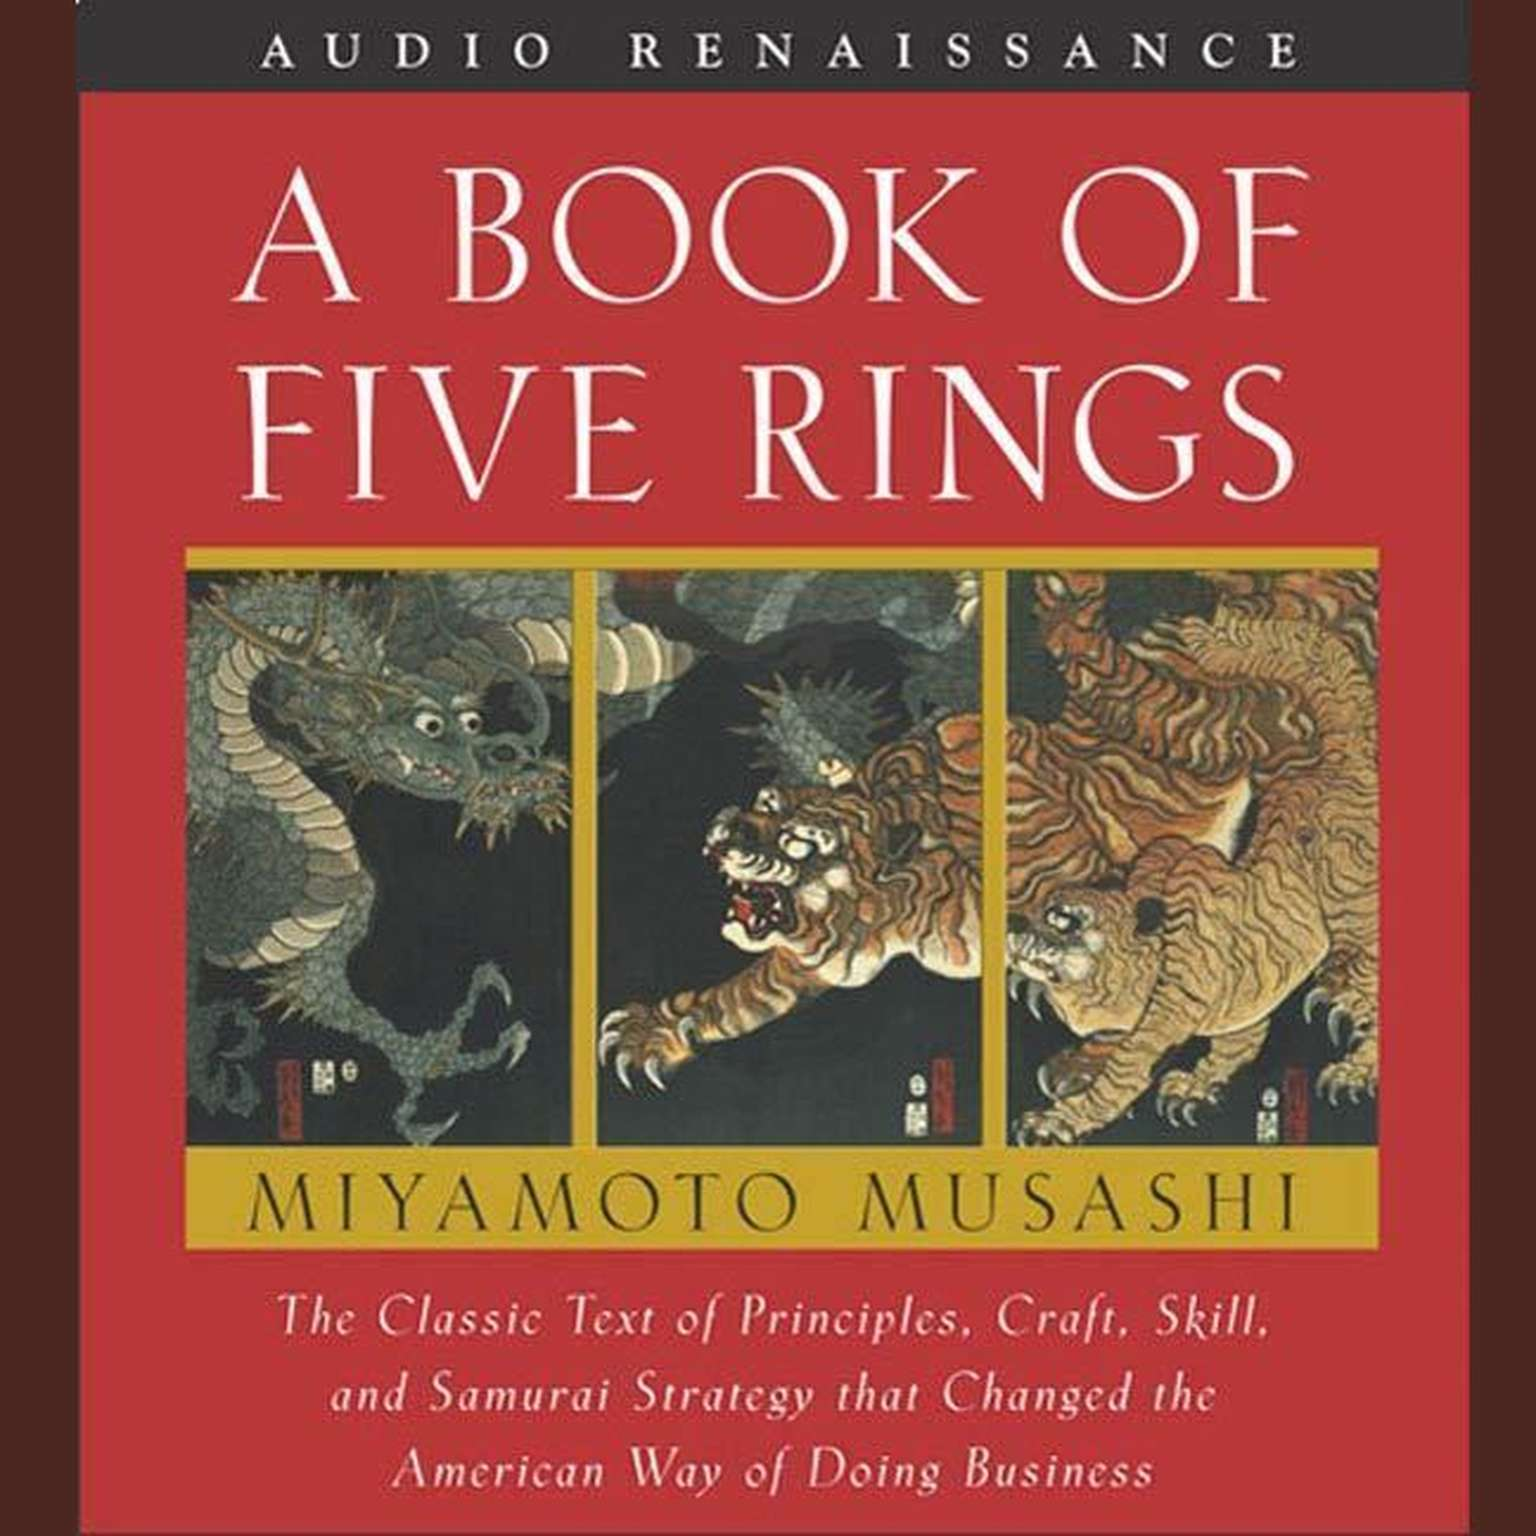 Printable A Book of Five Rings: The Classic Text of Principles, Craft, Skill and Samurai Strategy that Changed the American Way of Doing Business Audiobook Cover Art